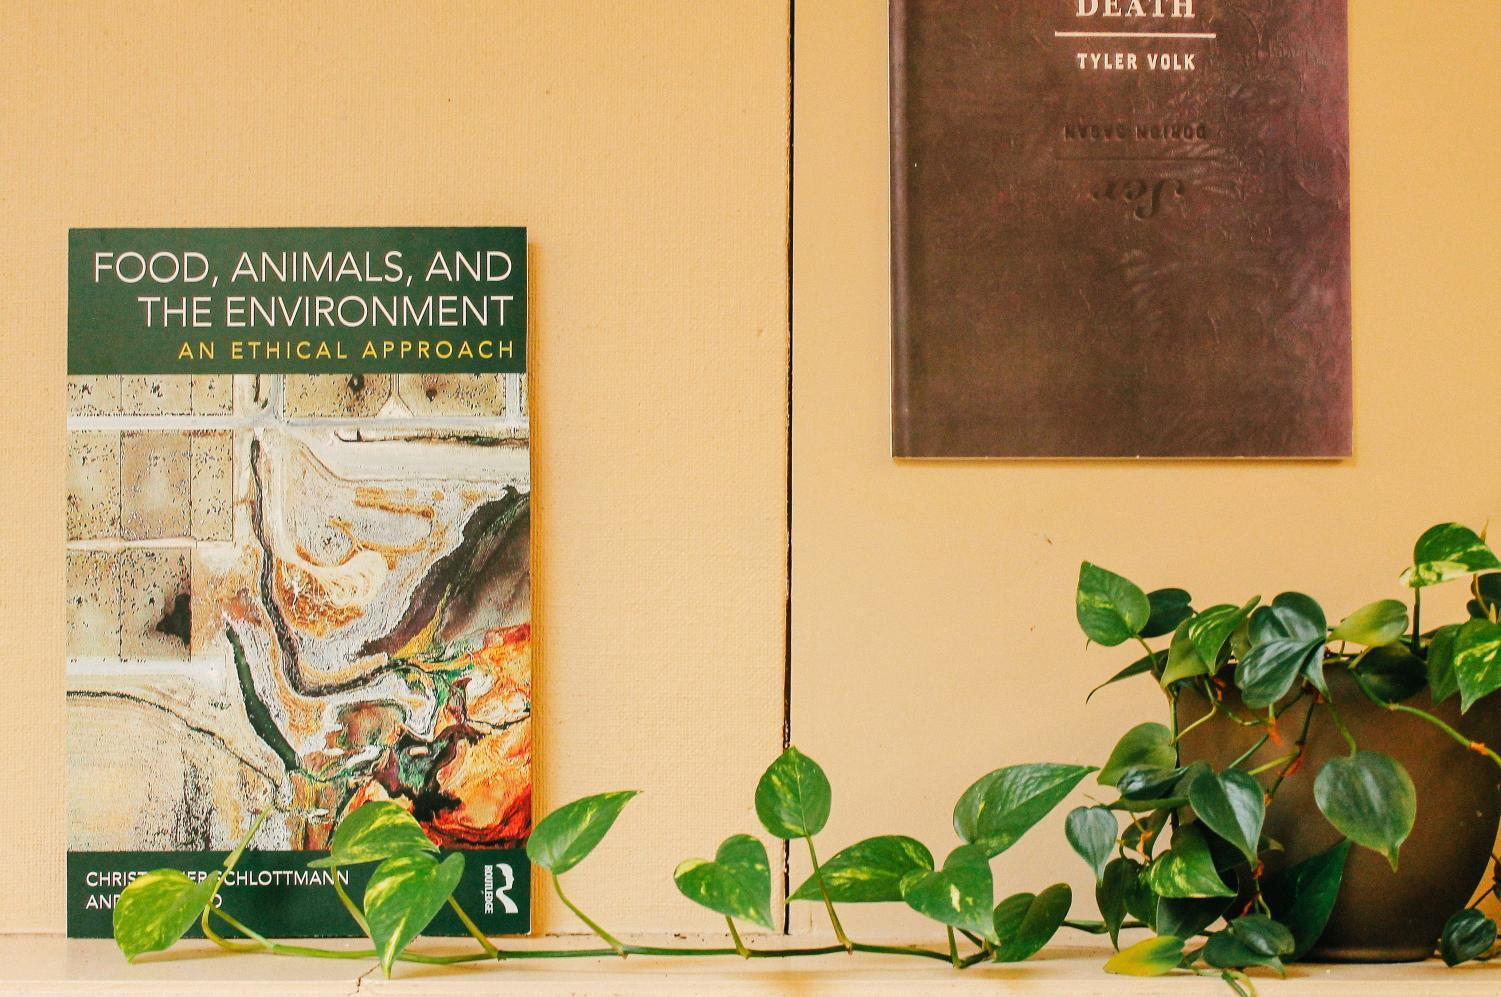 NYU will be opening a new Center for Environmental and Animal Protection.